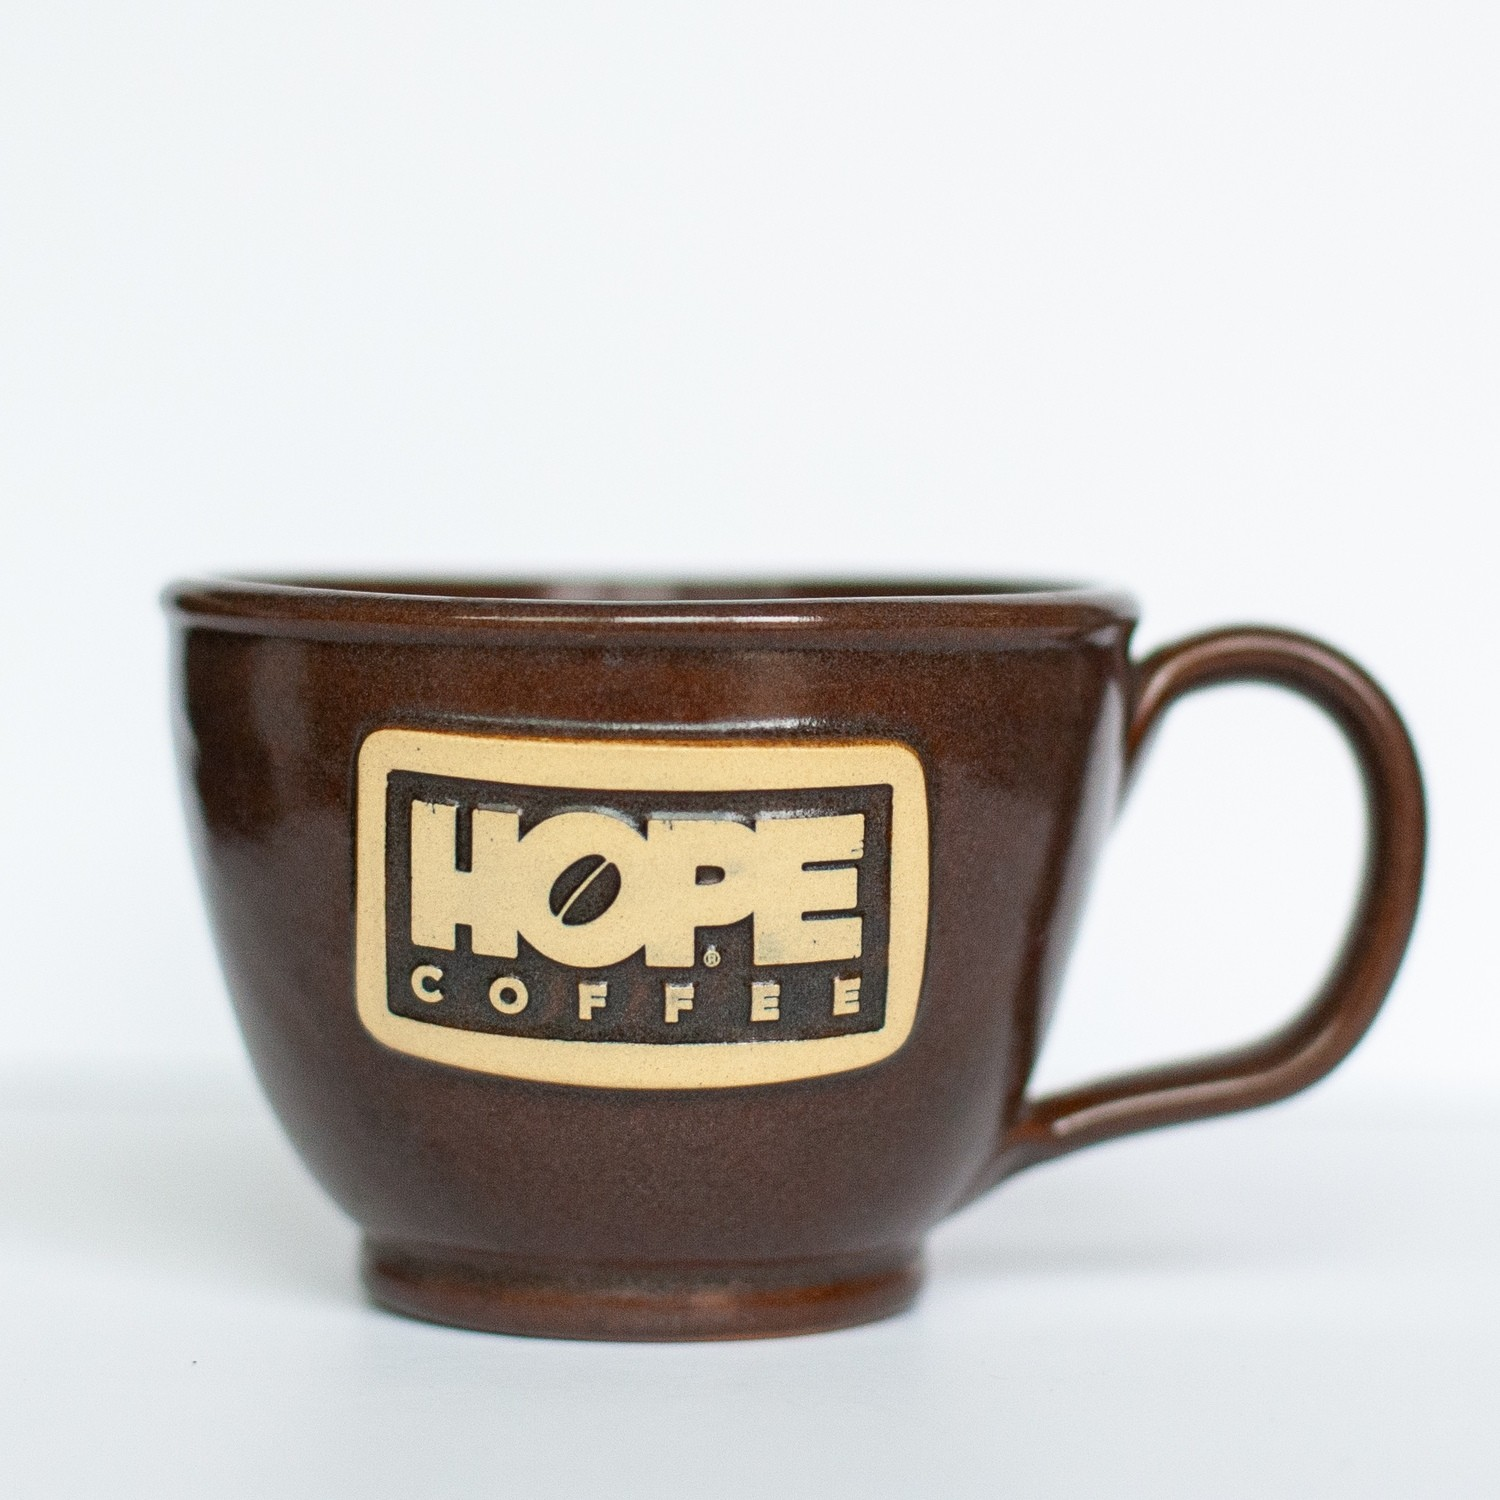 HOPE Coffee 12 oz Handcrafted Stoneware French Latte Mug